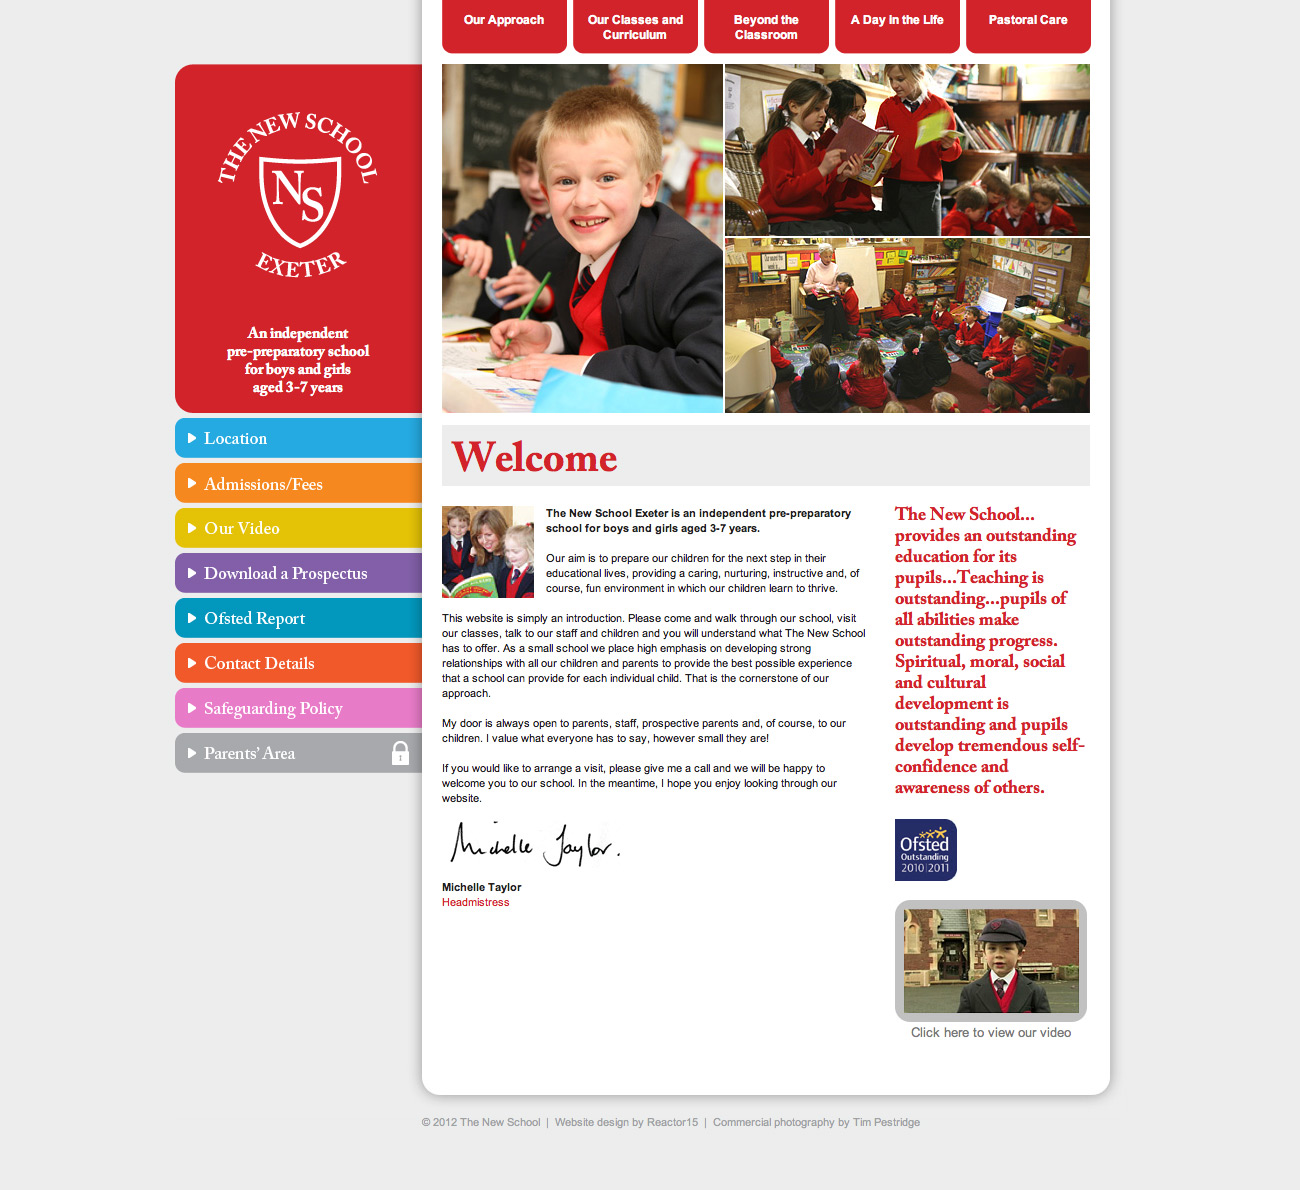 The New School Exeter Website Home Page